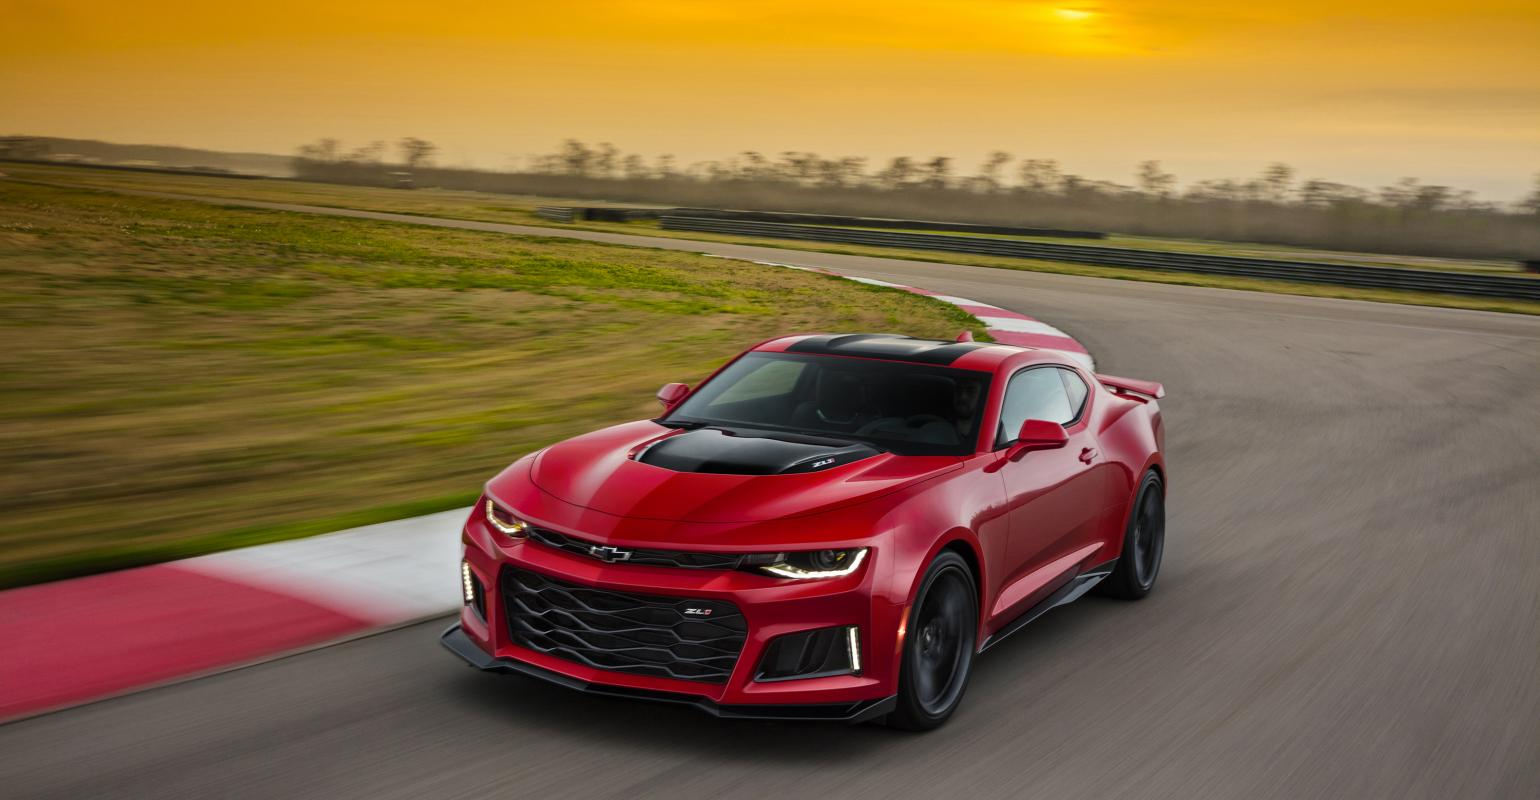 Gm Revs Up Another Chevrolet Camaro Zl1